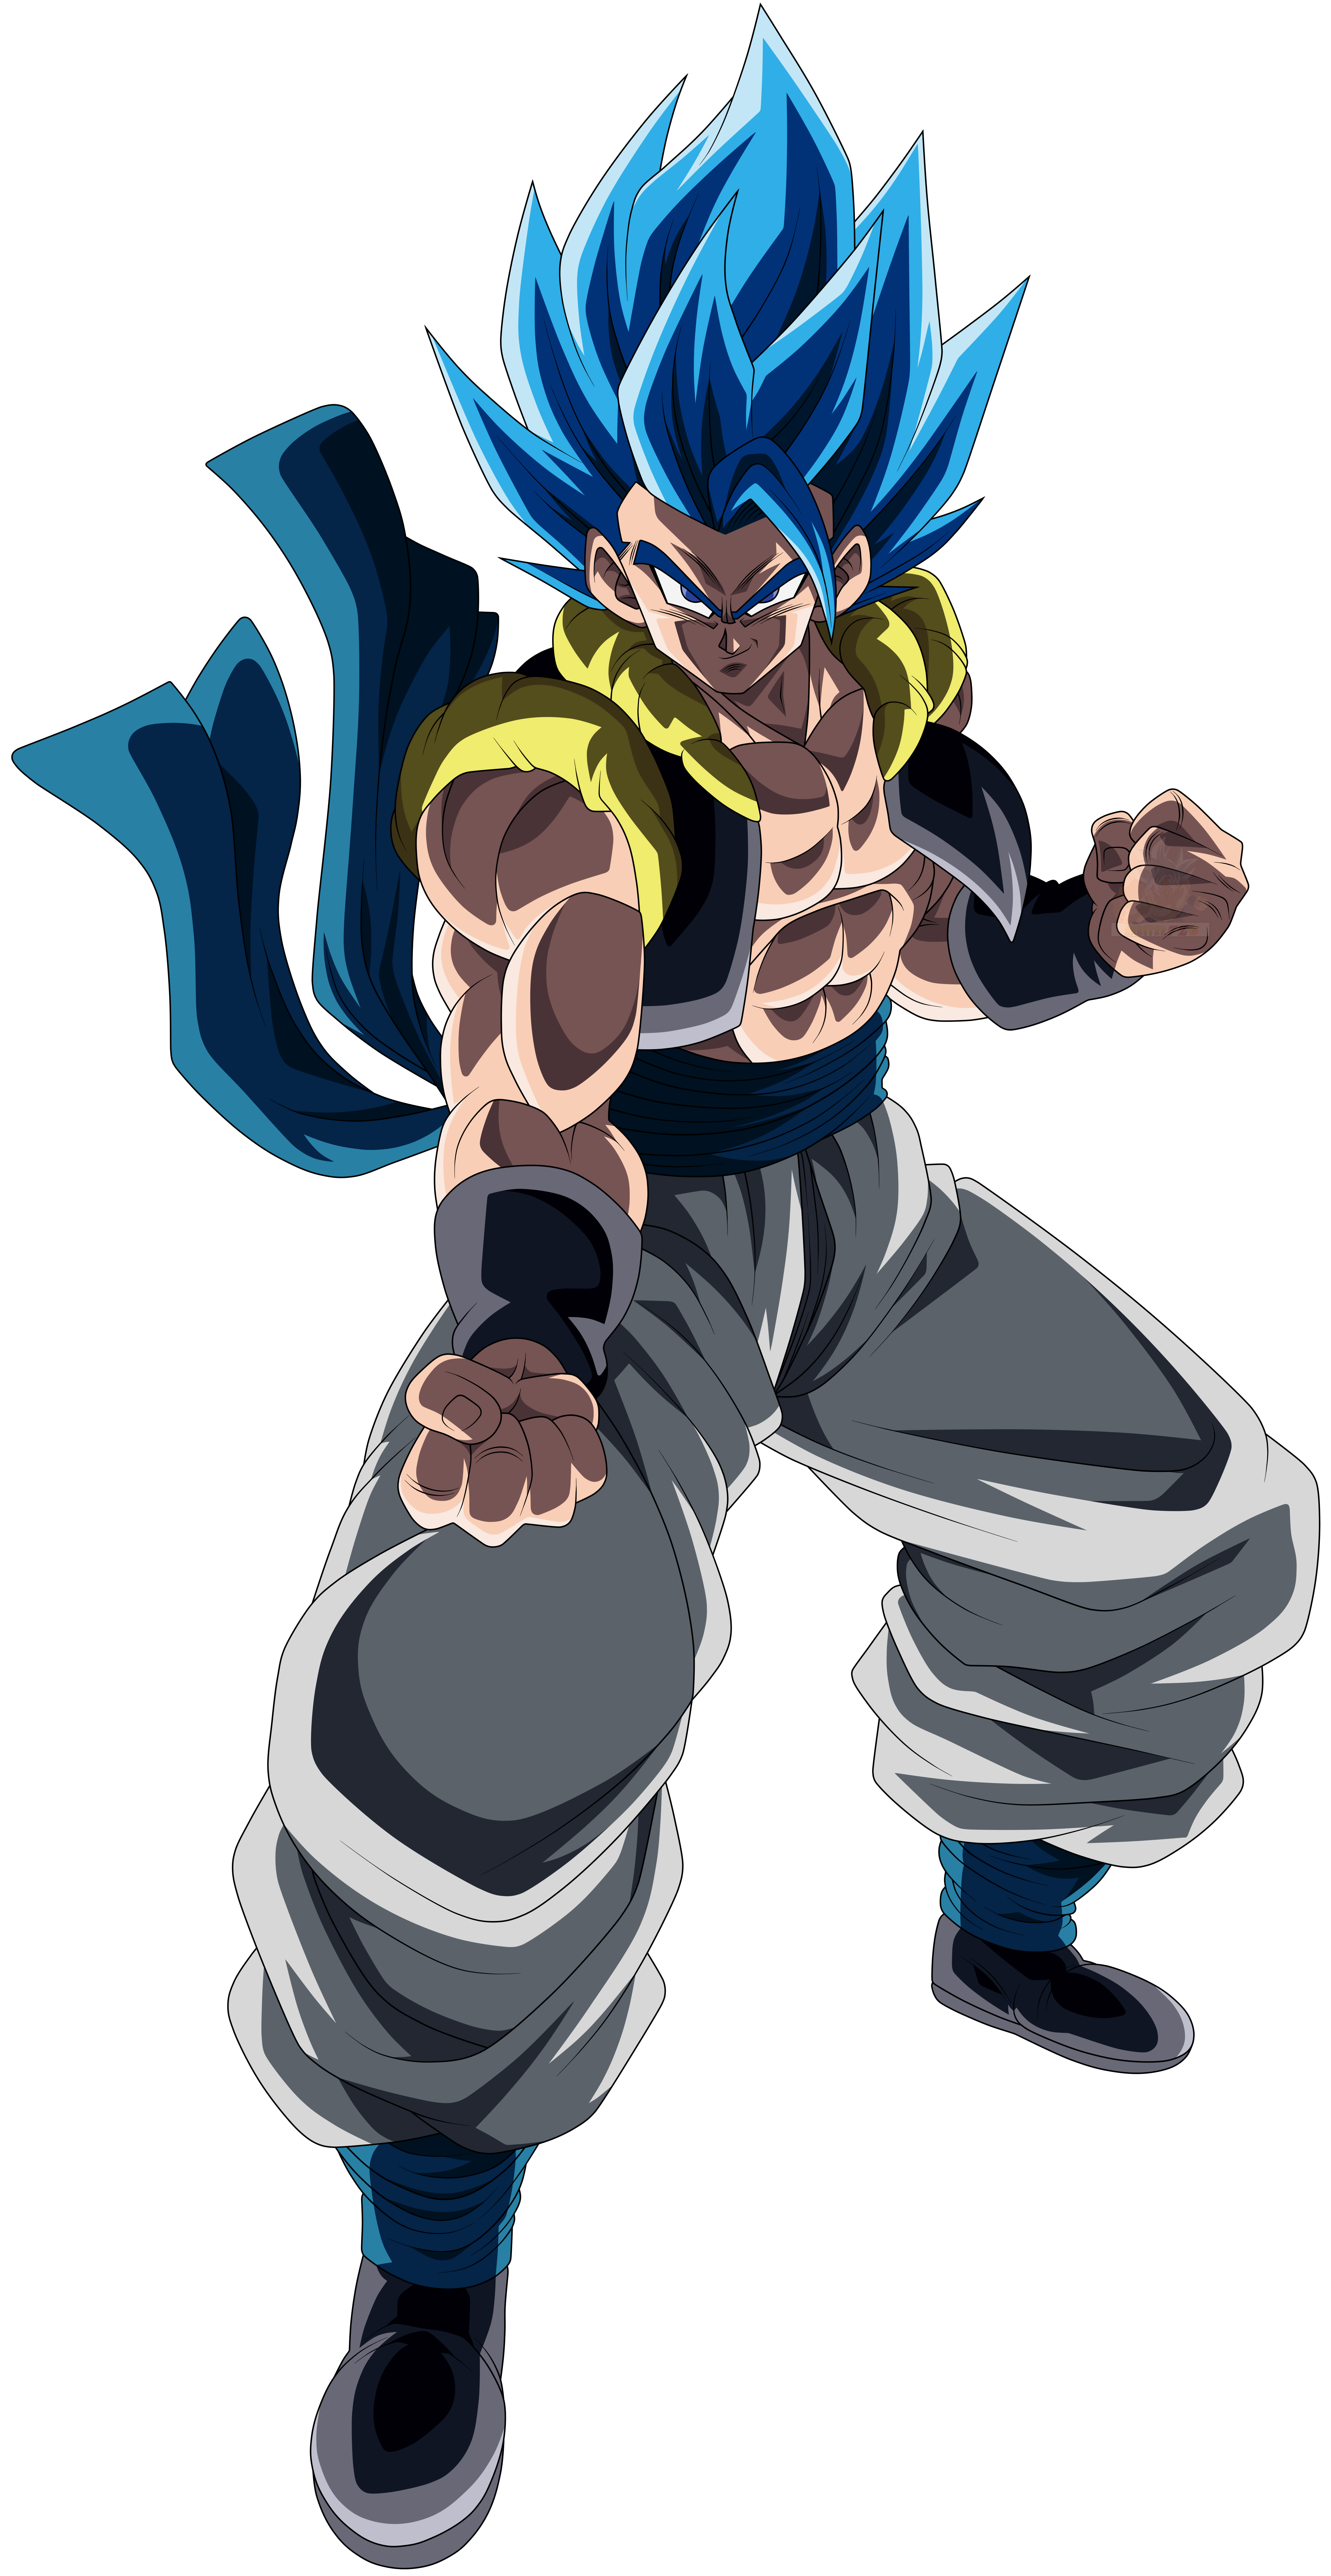 Gogeta Blue Poses Render (Dragon Ball Z Dokkan Battle).png